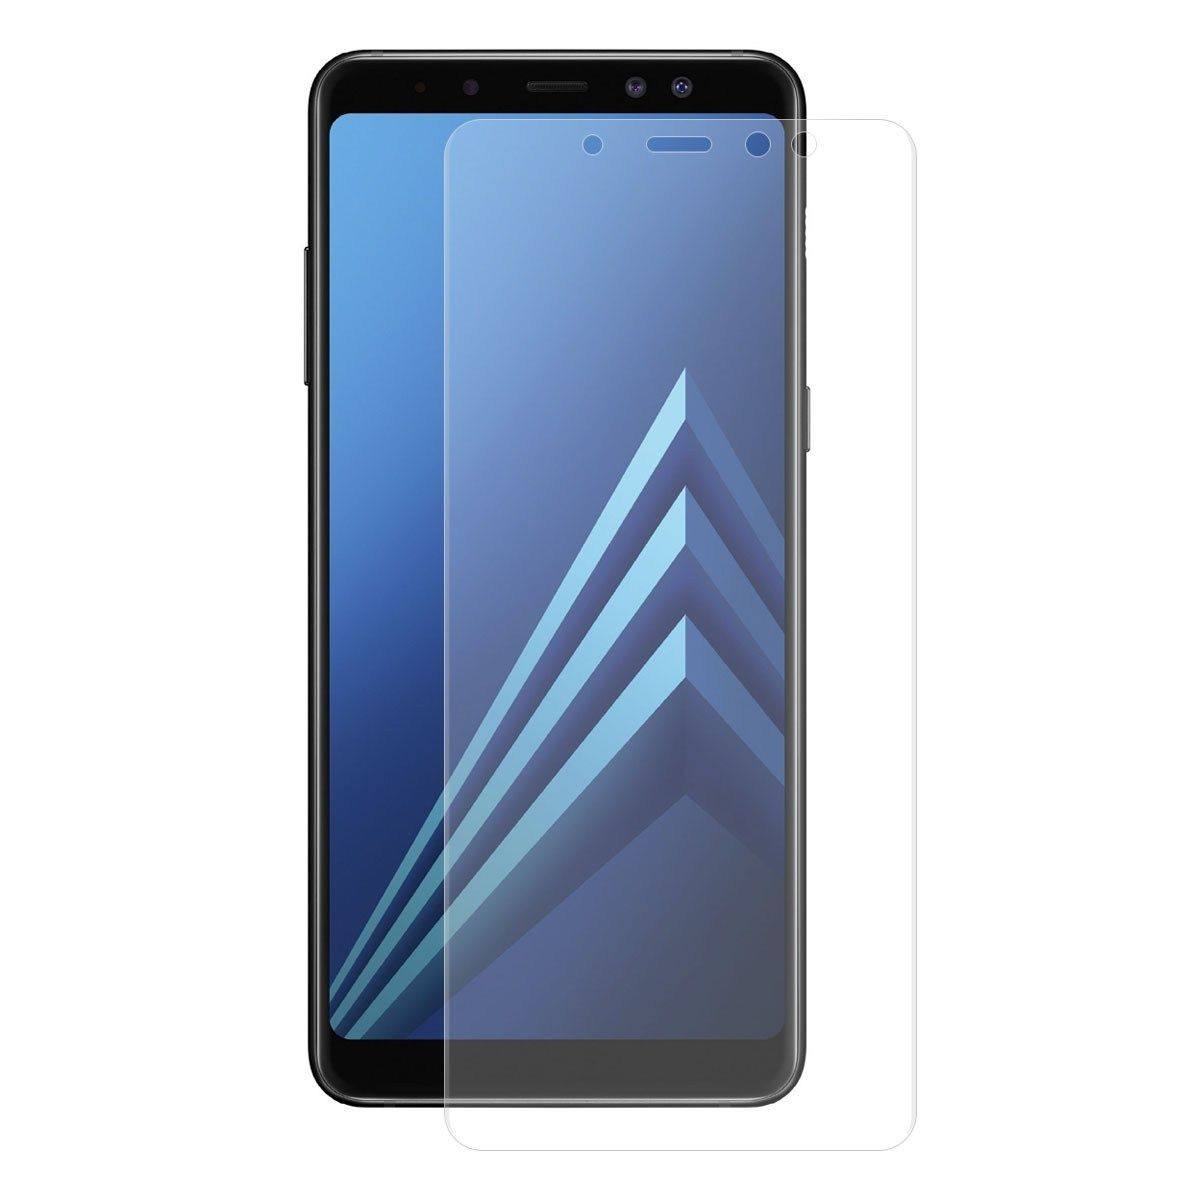 Enkay Screen Protector For Samsung Galaxy A8 Plus 2018 3d Curved Edge Hot Bending Soft Pet Film Galaxy Samsung Galaxy Screen Protectors